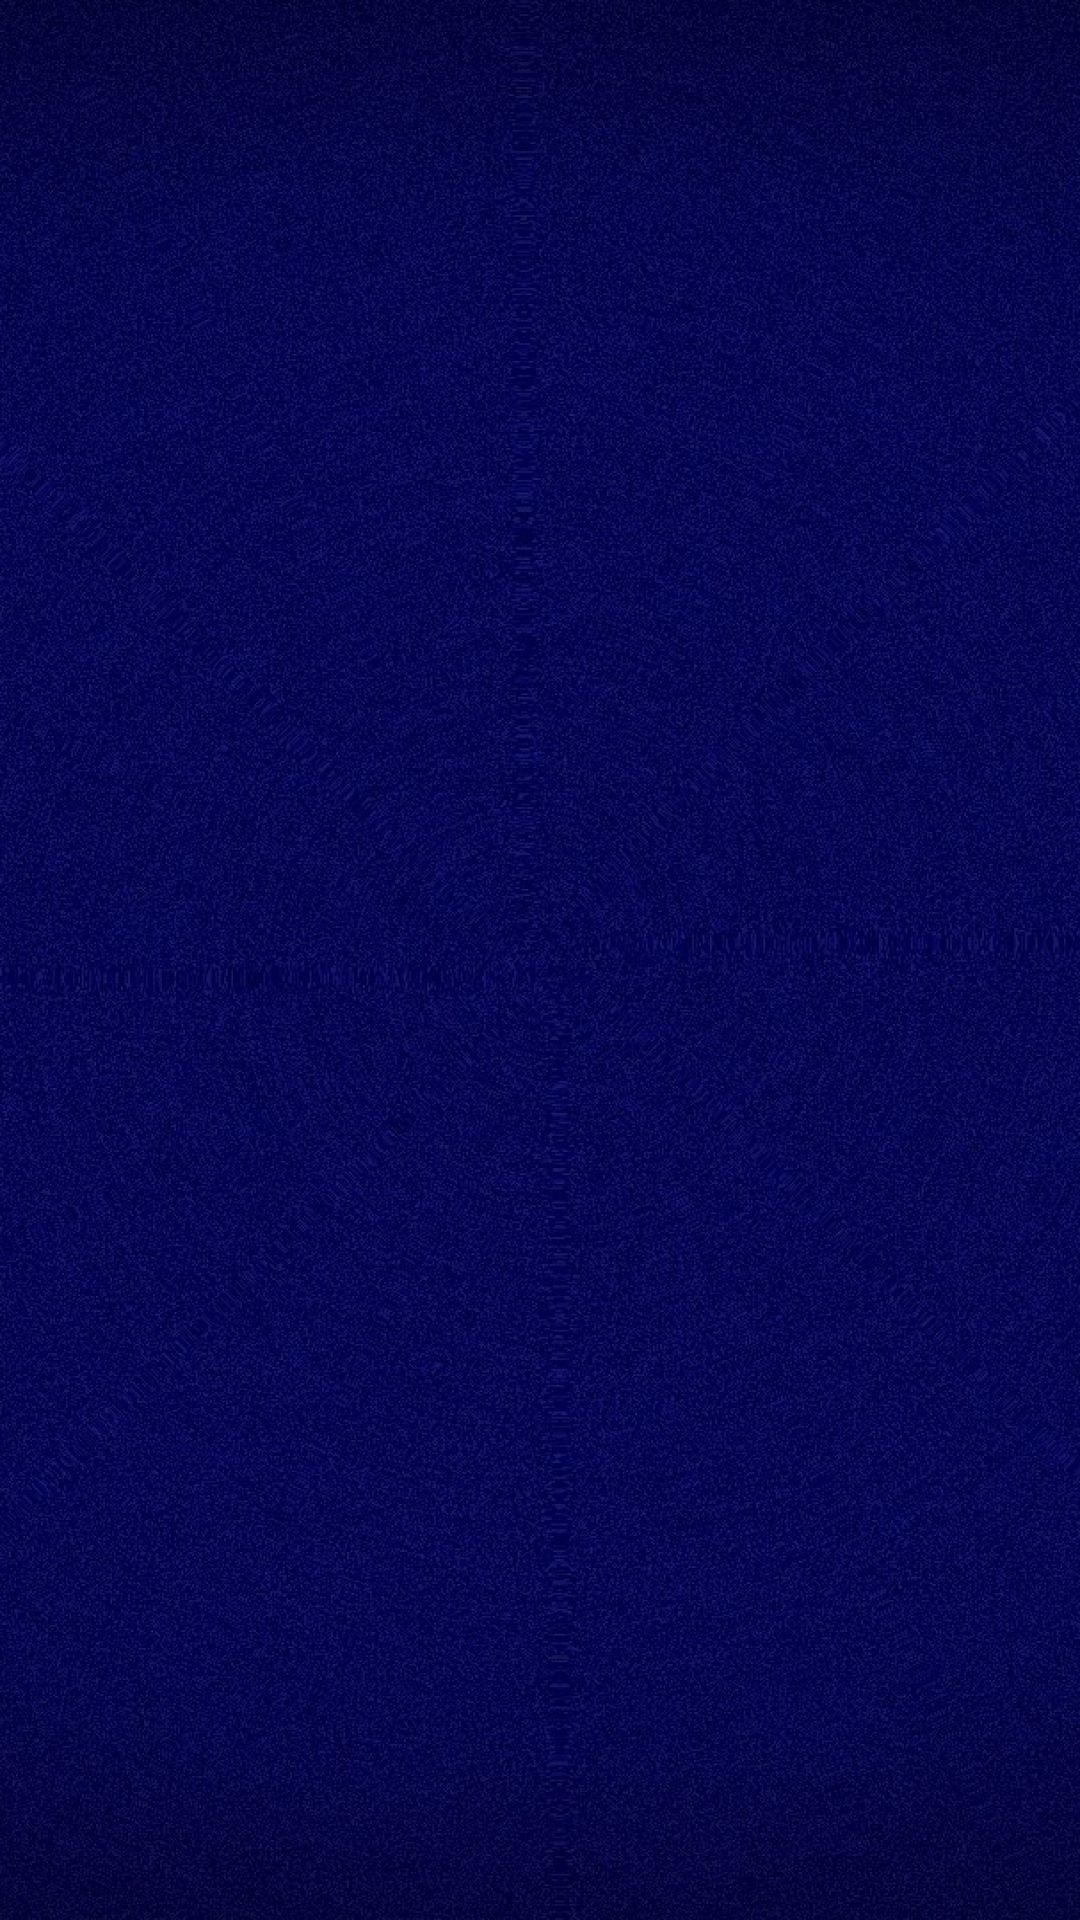 Dark Blue Gradient Android Wallpapers ...